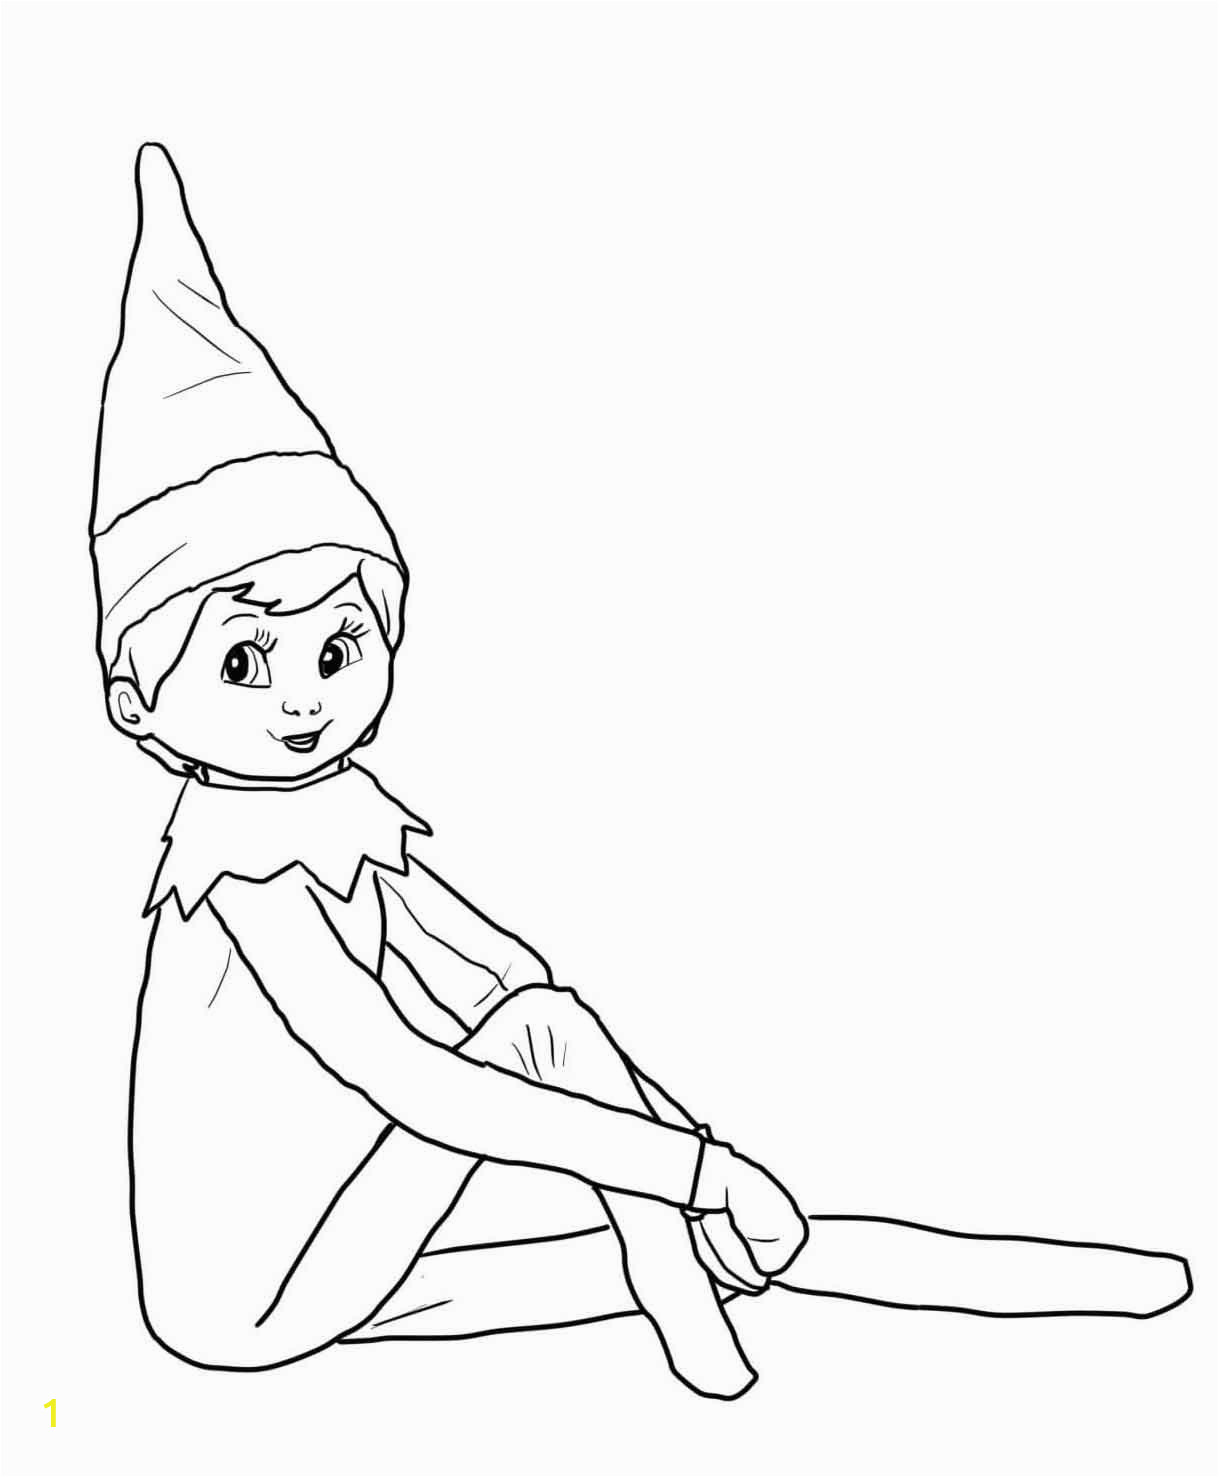 Free Printable Elf On the Shelf Coloring Pages Free Coloring Pages Of Christmas Elf On the Shelf Coloring